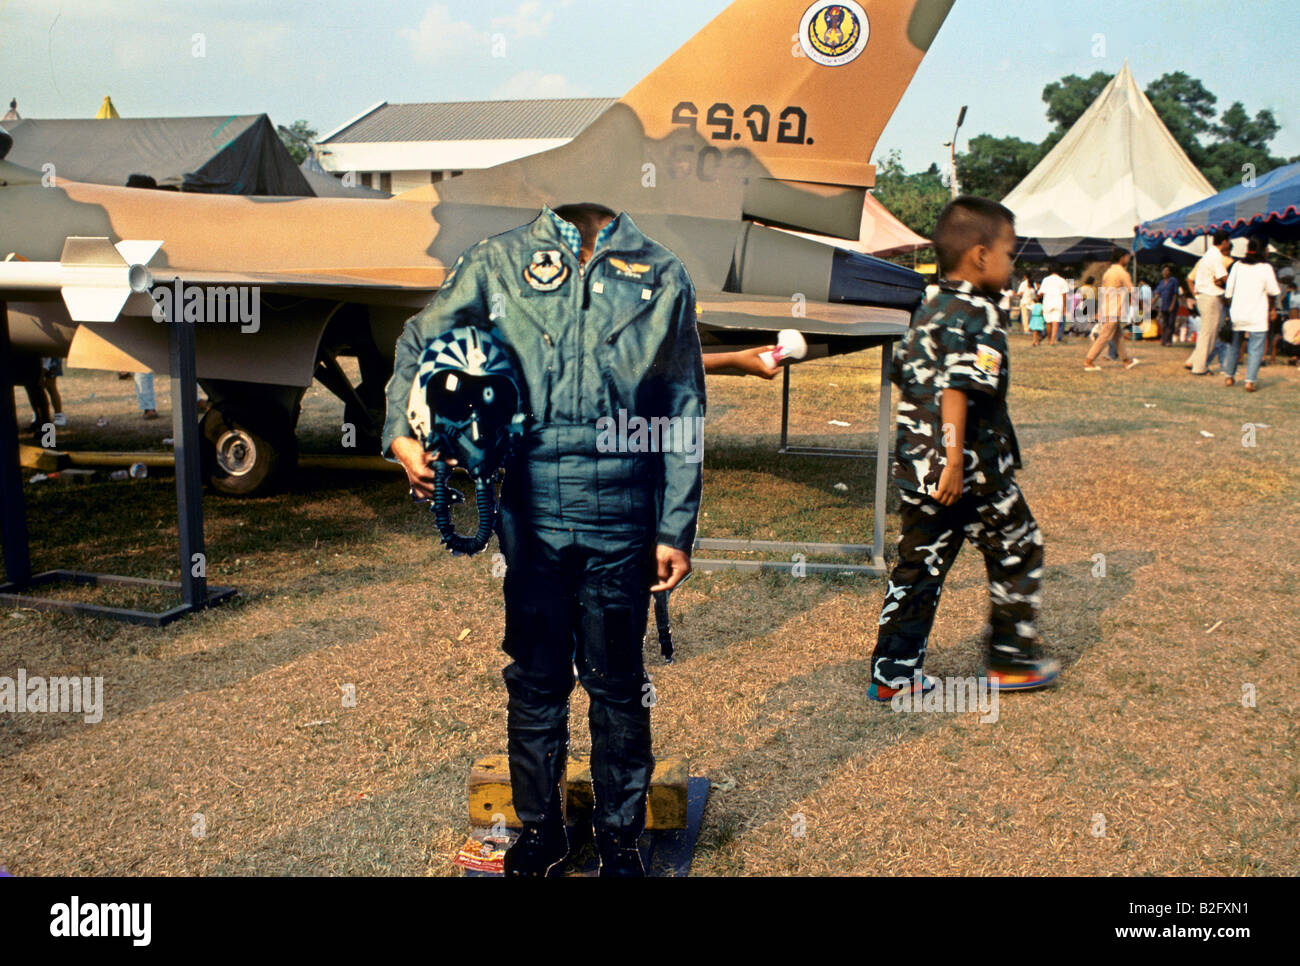 Young boy in camouflage fighter pilot overalls, model of airforce uniform and model jet plane - Stock Image